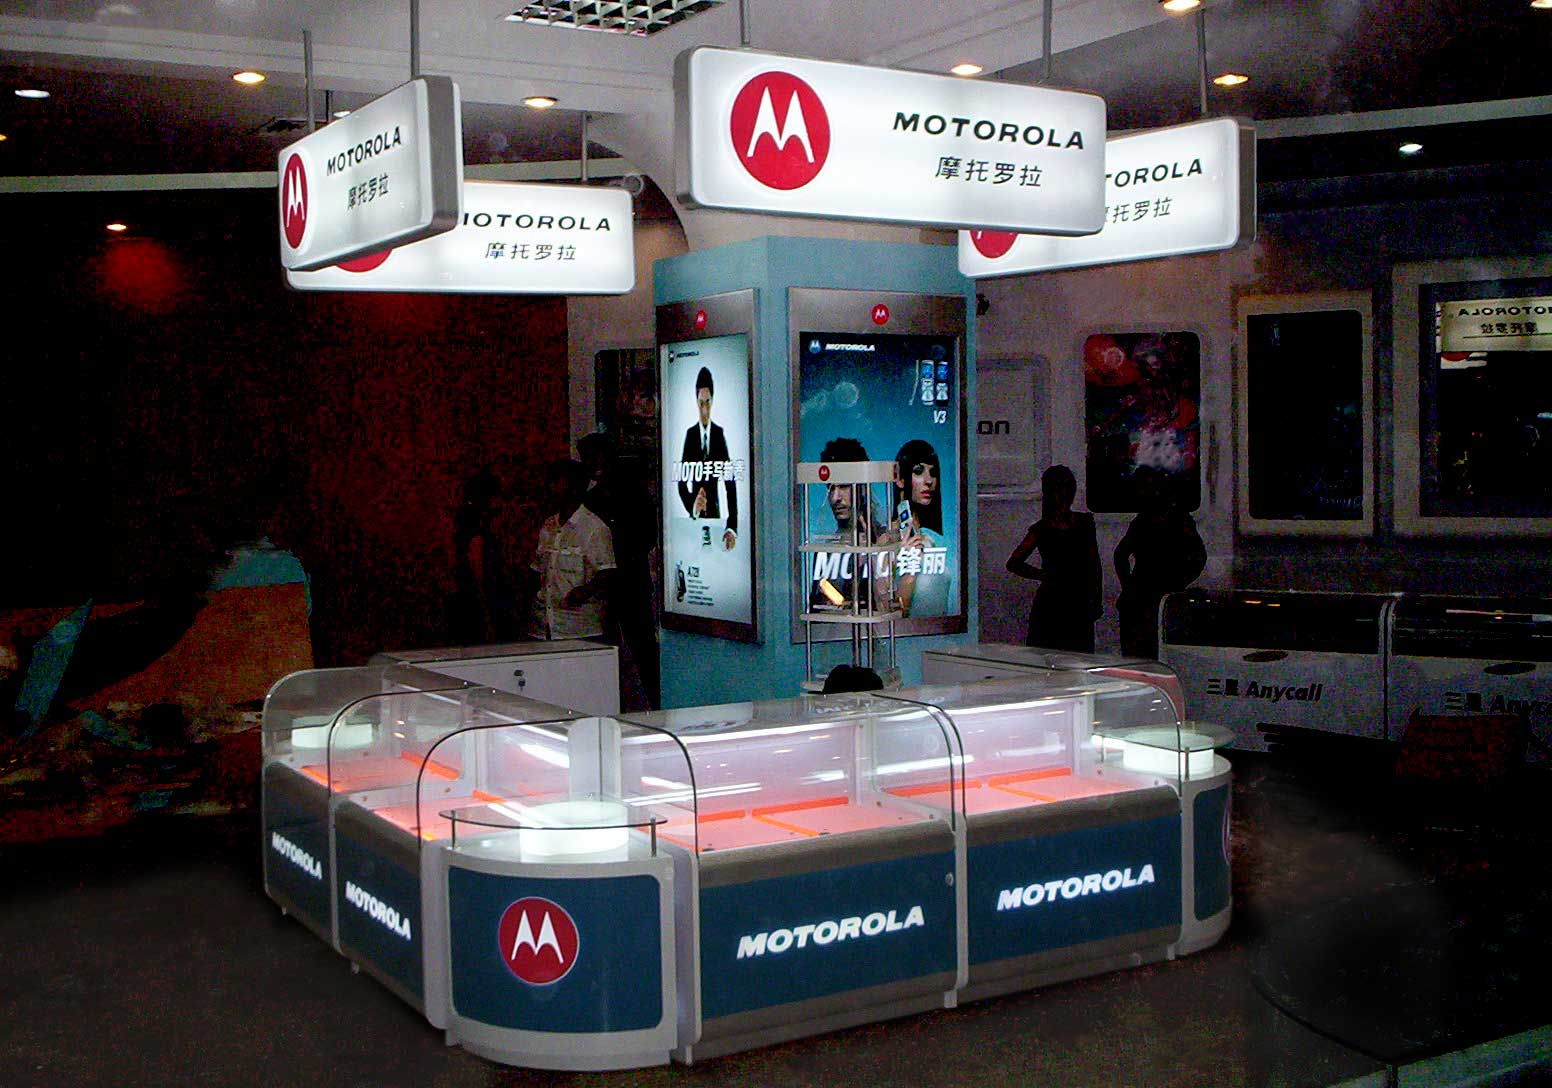 Motorola Trade Show Exhibit